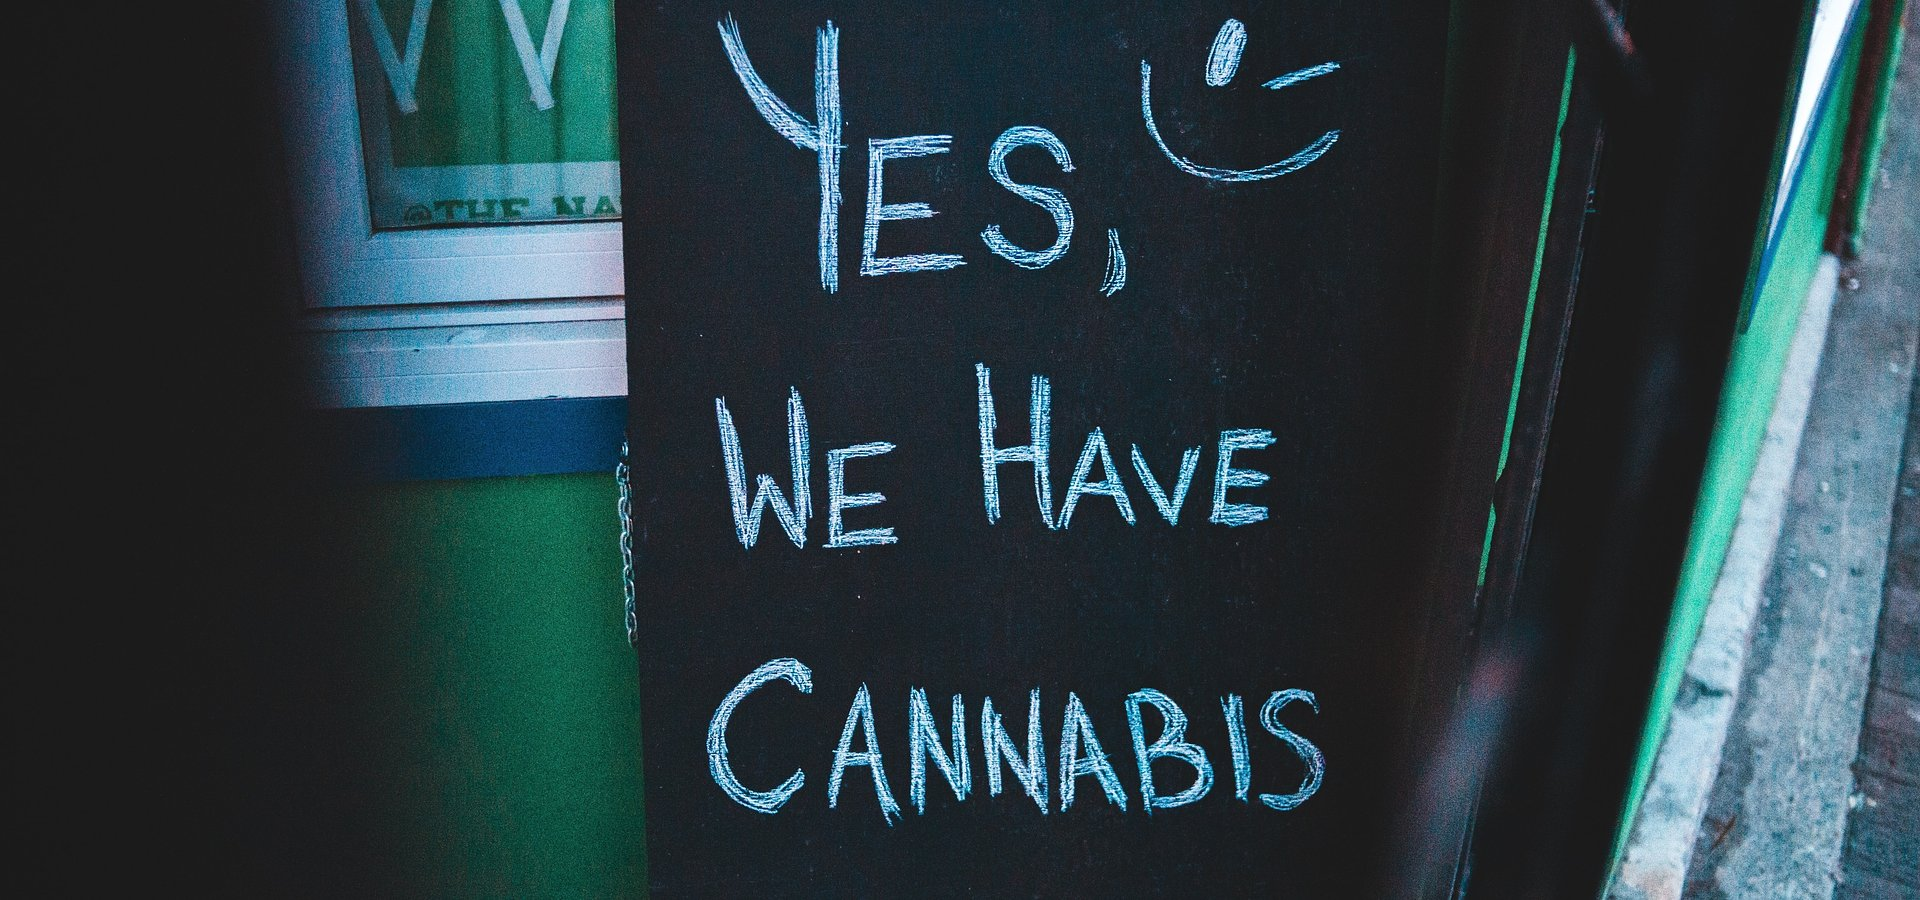 Cannabis and CBD Shops Can Leverage Digital Signage, Entertainment, & Social Media